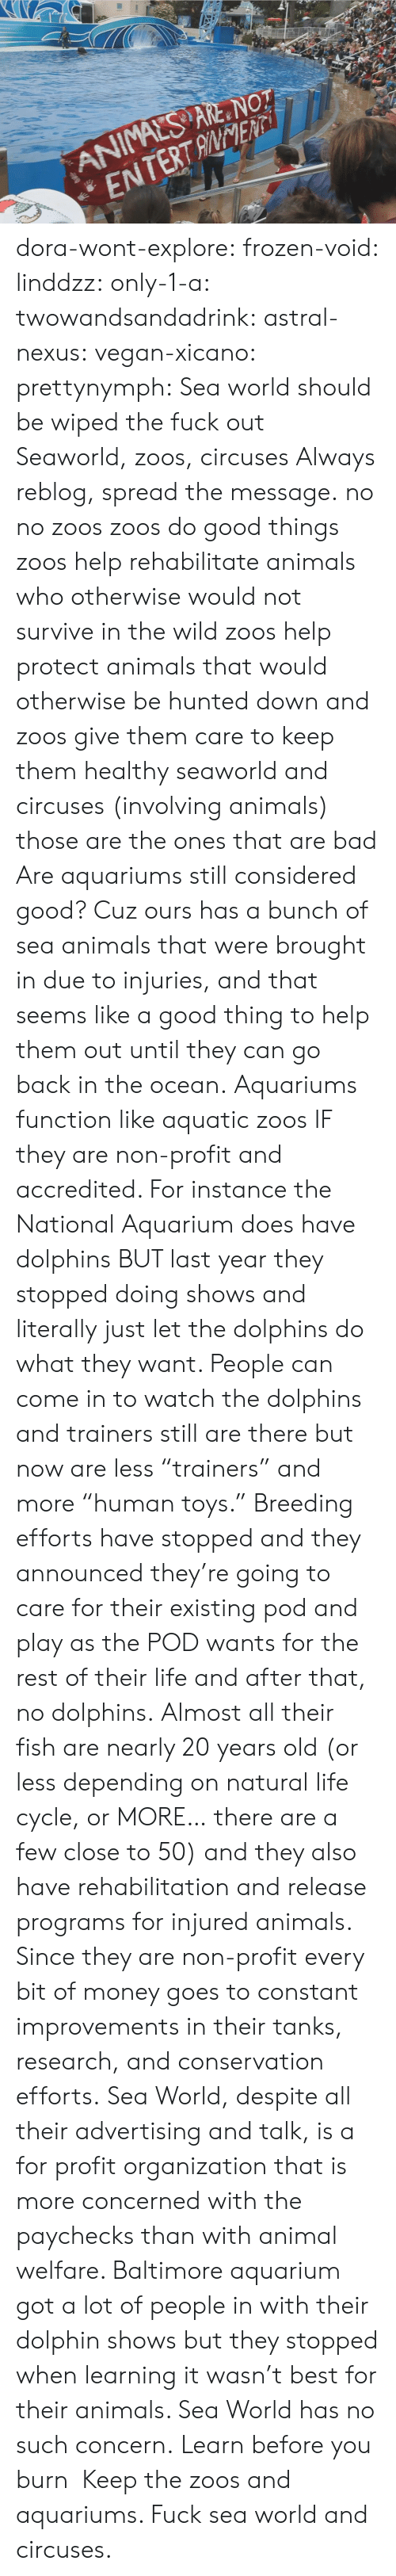 "Animals, Bad, and Frozen: ANIMALS ARE NOT  ENTERTANENTi dora-wont-explore:   frozen-void:  linddzz:  only-1-a:  twowandsandadrink:  astral-nexus:  vegan-xicano:  prettynymph:  Sea world should be wiped the fuck out  Seaworld, zoos, circuses  Always reblog, spread the message.  no no zoos zoos do good things zoos help rehabilitate animals who otherwise would not survive in the wild zoos help protect animals that would otherwise be hunted down and zoos give them care to keep them healthy seaworld and circuses (involving animals) those are the ones that are bad  Are aquariums still considered good? Cuz ours has a bunch of sea animals that were brought in due to injuries, and that seems like a good thing to help them out until they can go back in the ocean.  Aquariums function like aquatic zoos IF they are non-profit and accredited. For instance the National Aquarium does have dolphins BUT last year they stopped doing shows and literally just let the dolphins do what they want. People can come in to watch the dolphins and trainers still are there but now are less ""trainers"" and more ""human toys."" Breeding efforts have stopped and they announced they're going to care for their existing pod and play as the POD wants for the rest of their life and after that, no dolphins. Almost all their fish are nearly 20 years old (or less depending on natural life cycle, or MORE… there are a few close to 50) and they also have rehabilitation and release programs for injured animals. Since they are non-profit every bit of money goes to constant improvements in their tanks, research, and conservation efforts. Sea World, despite all their advertising and talk, is a for profit organization that is more concerned with the paychecks than with animal welfare. Baltimore aquarium got a lot of people in with their dolphin shows but they stopped when learning it wasn't best for their animals. Sea World has no such concern.  Learn before you burn   Keep the zoos and aquariums. Fuck sea world and circuses."